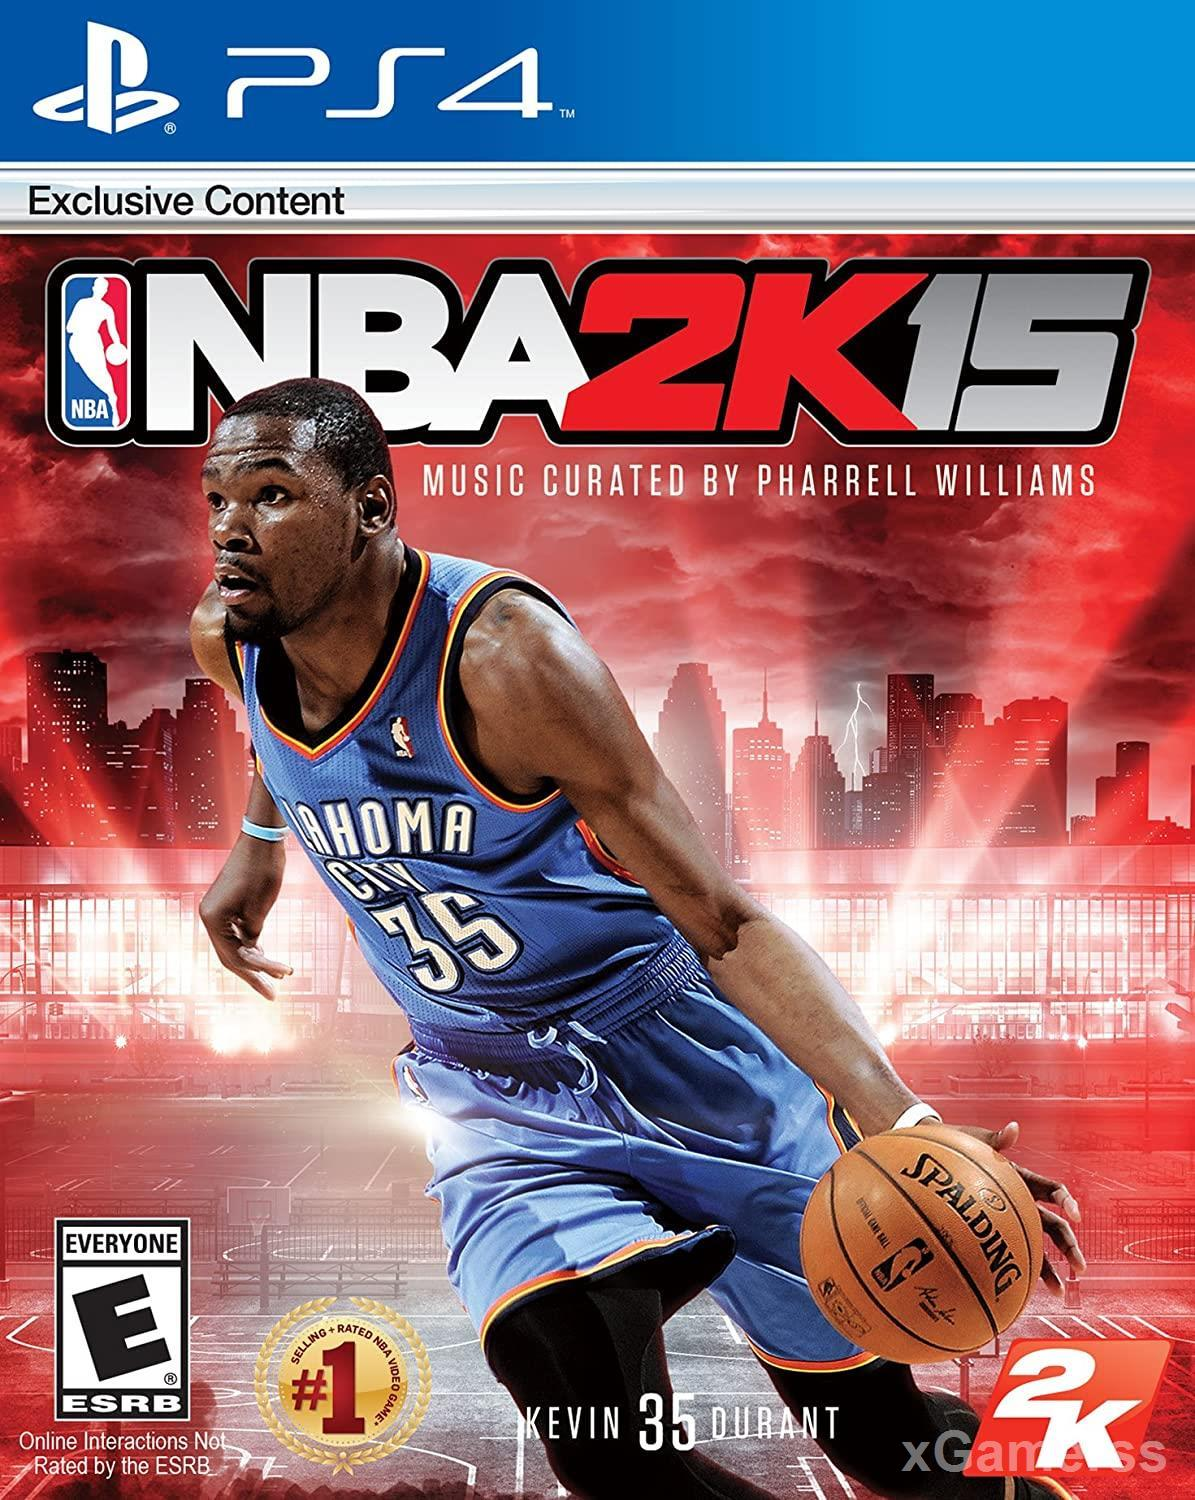 NBA 2K15 PS4 -  in this game the players maintain a very tuned and refined game mechanic during every move